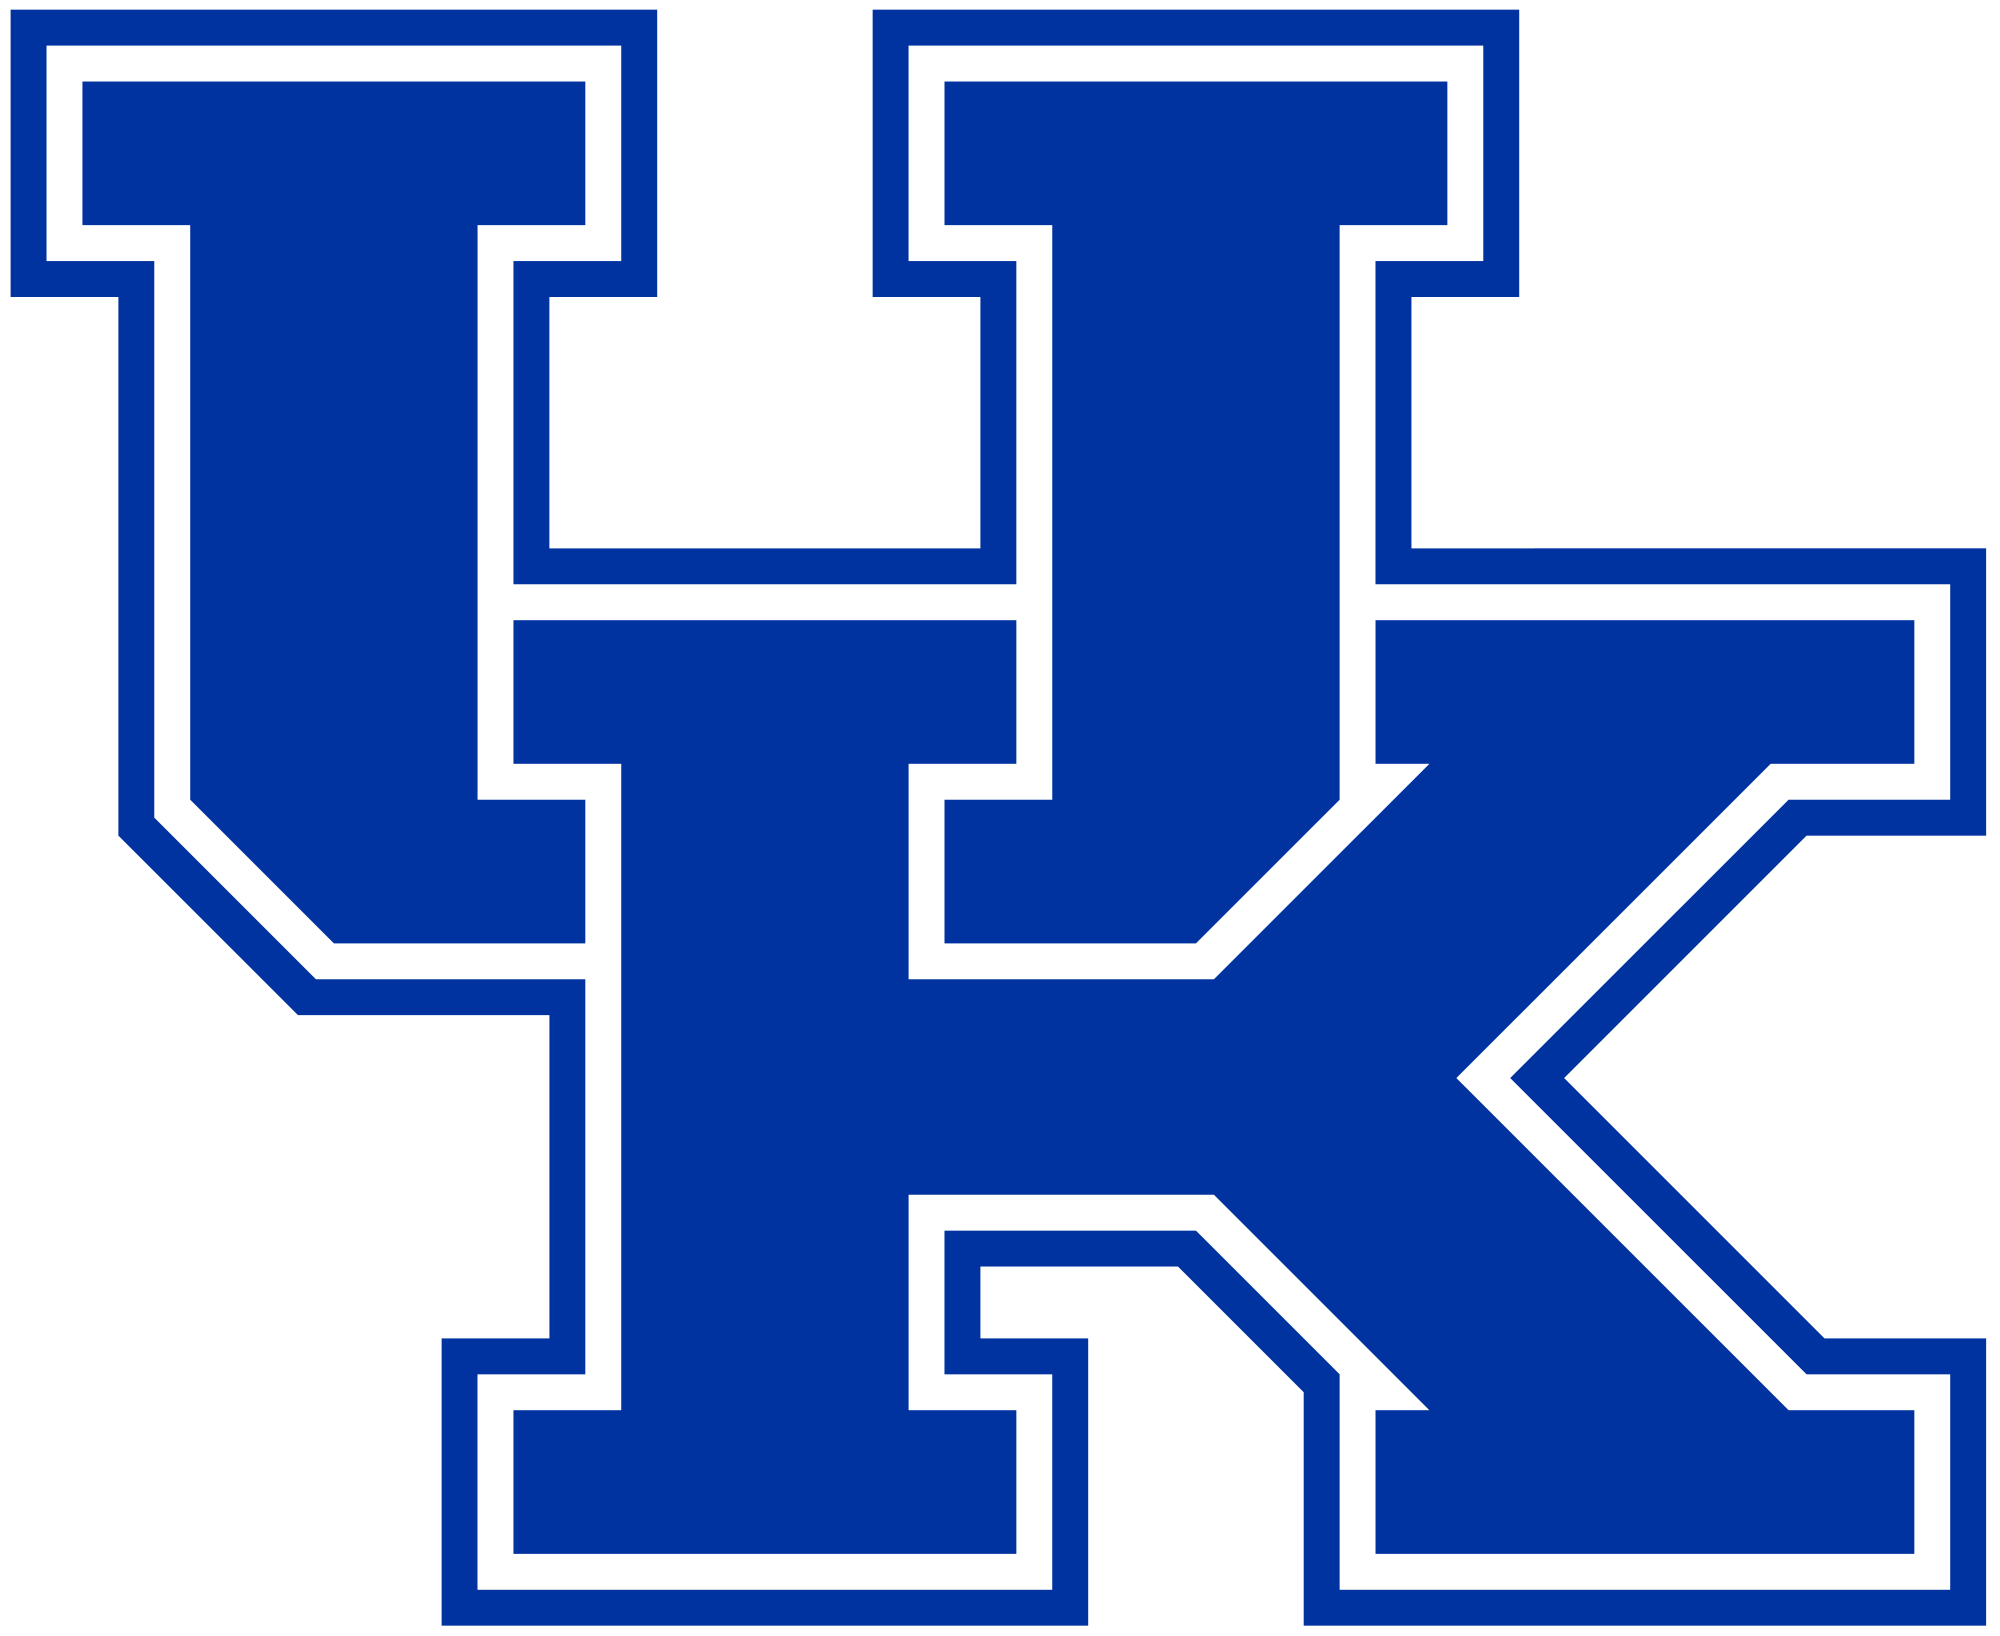 File:Kentucky Wildcats logo.svg